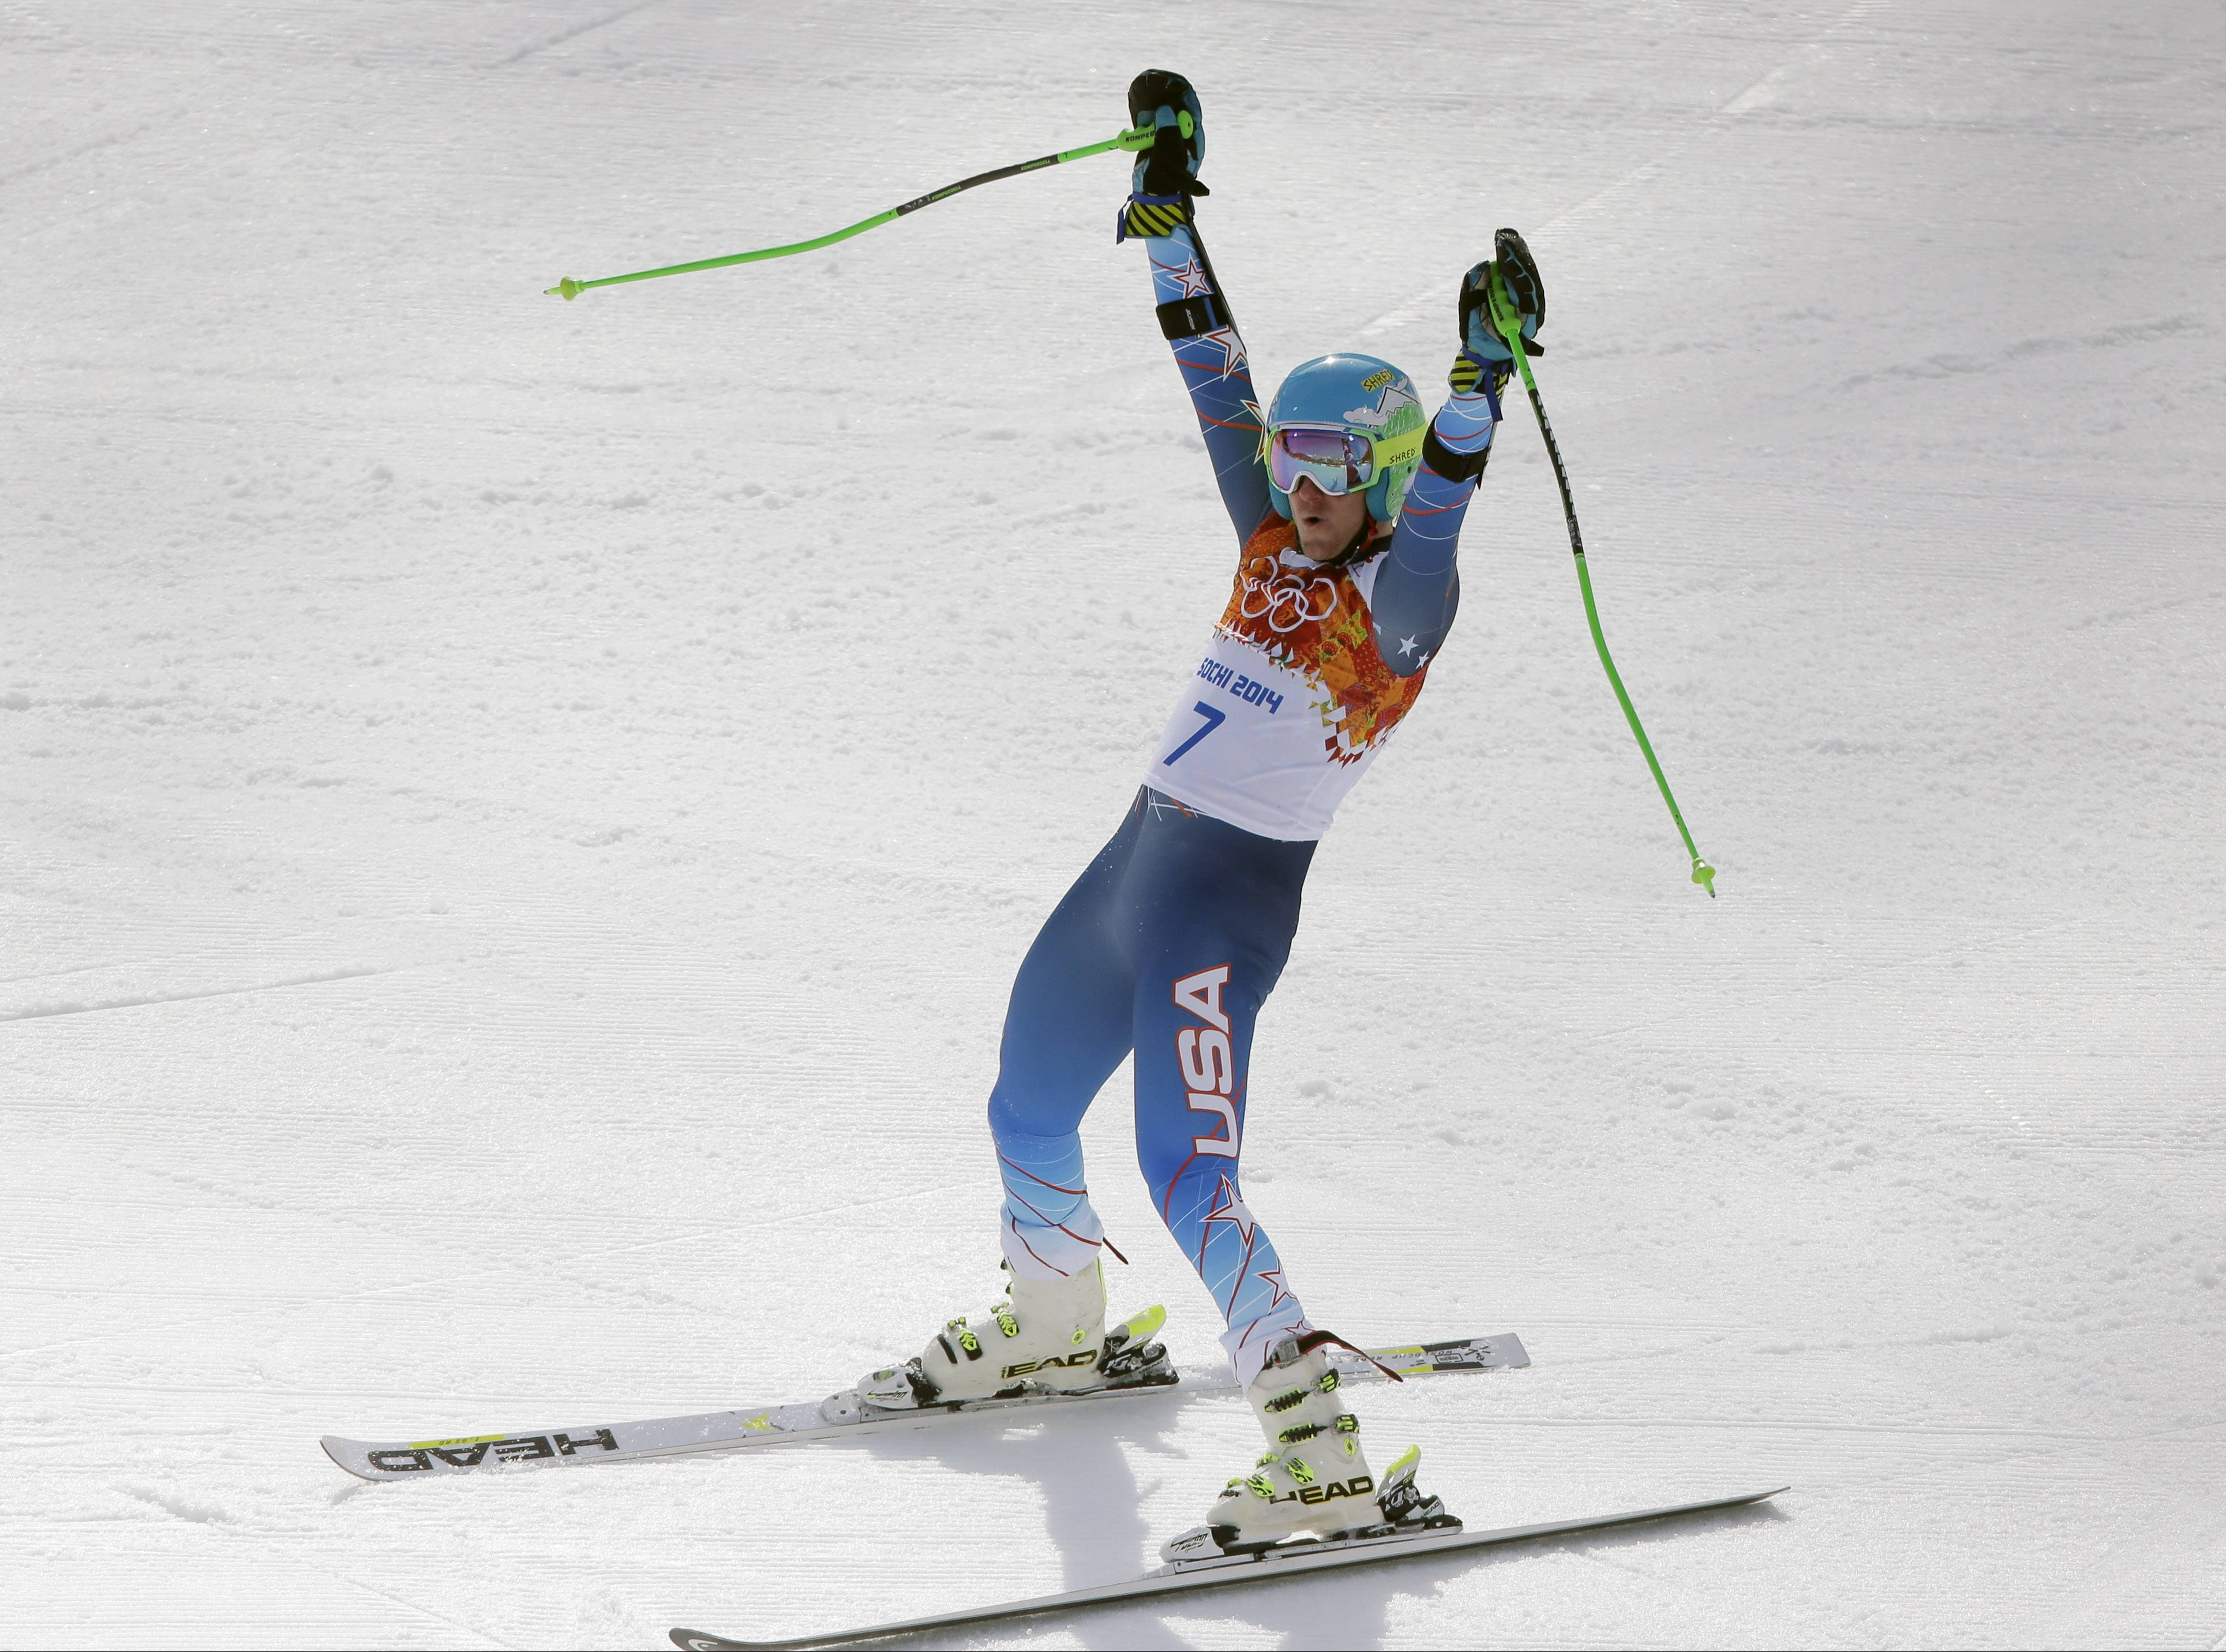 United States skier Ted Ligety celebrates Wednesday after winning the gold medal in the men's giant slalom at the Sochi 2014 Winter Olympics in Krasnaya Polyana, Russia.